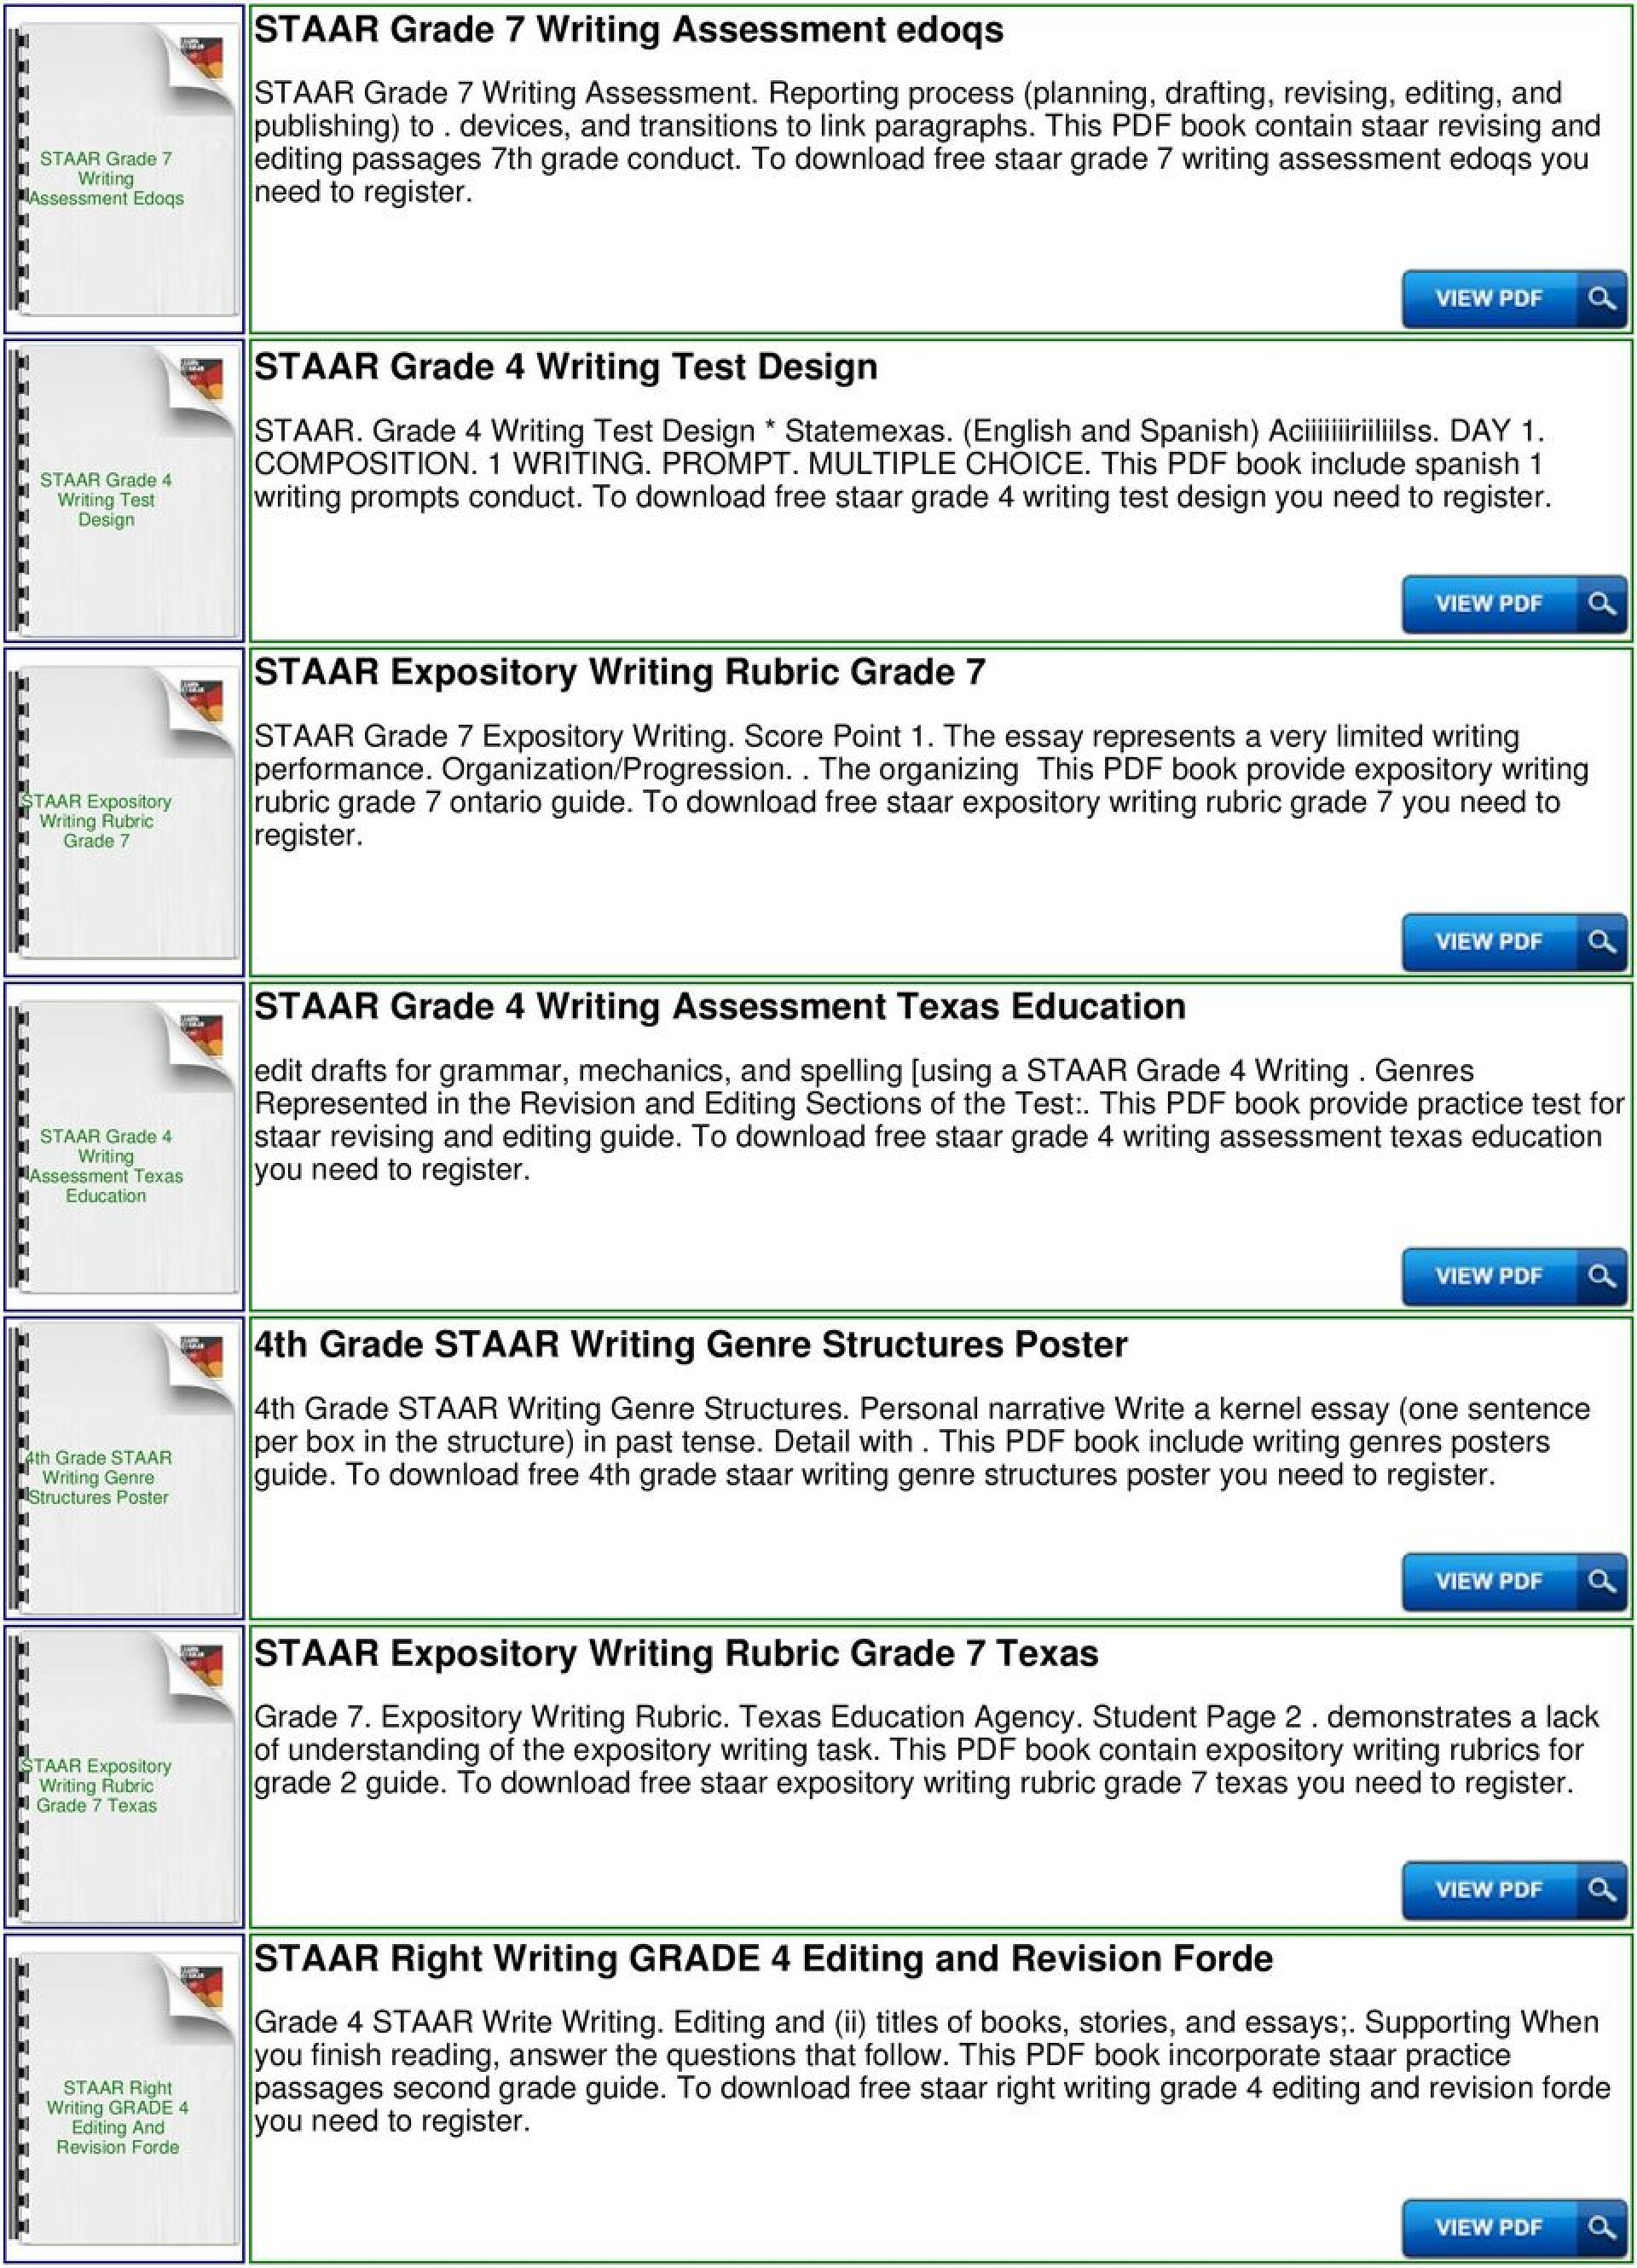 024 Research Paper Free Download Papers On Education Page 3 Stunning 1920